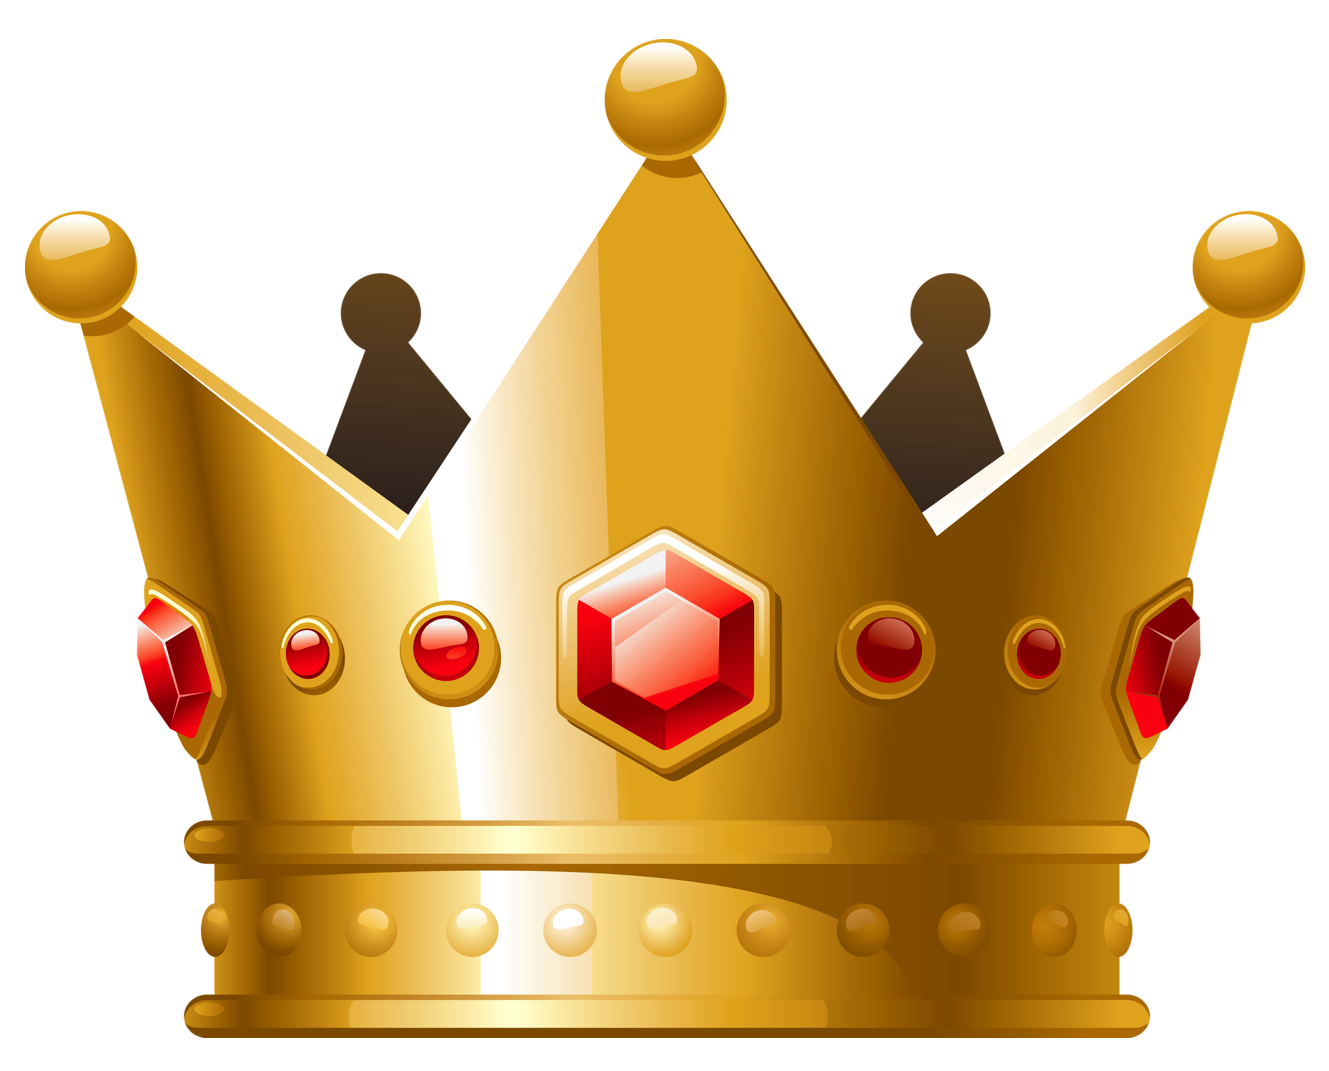 Heart with crown clipart transparent clip free Crown transparent crown image with transparent background 2 | Crowns ... clip free